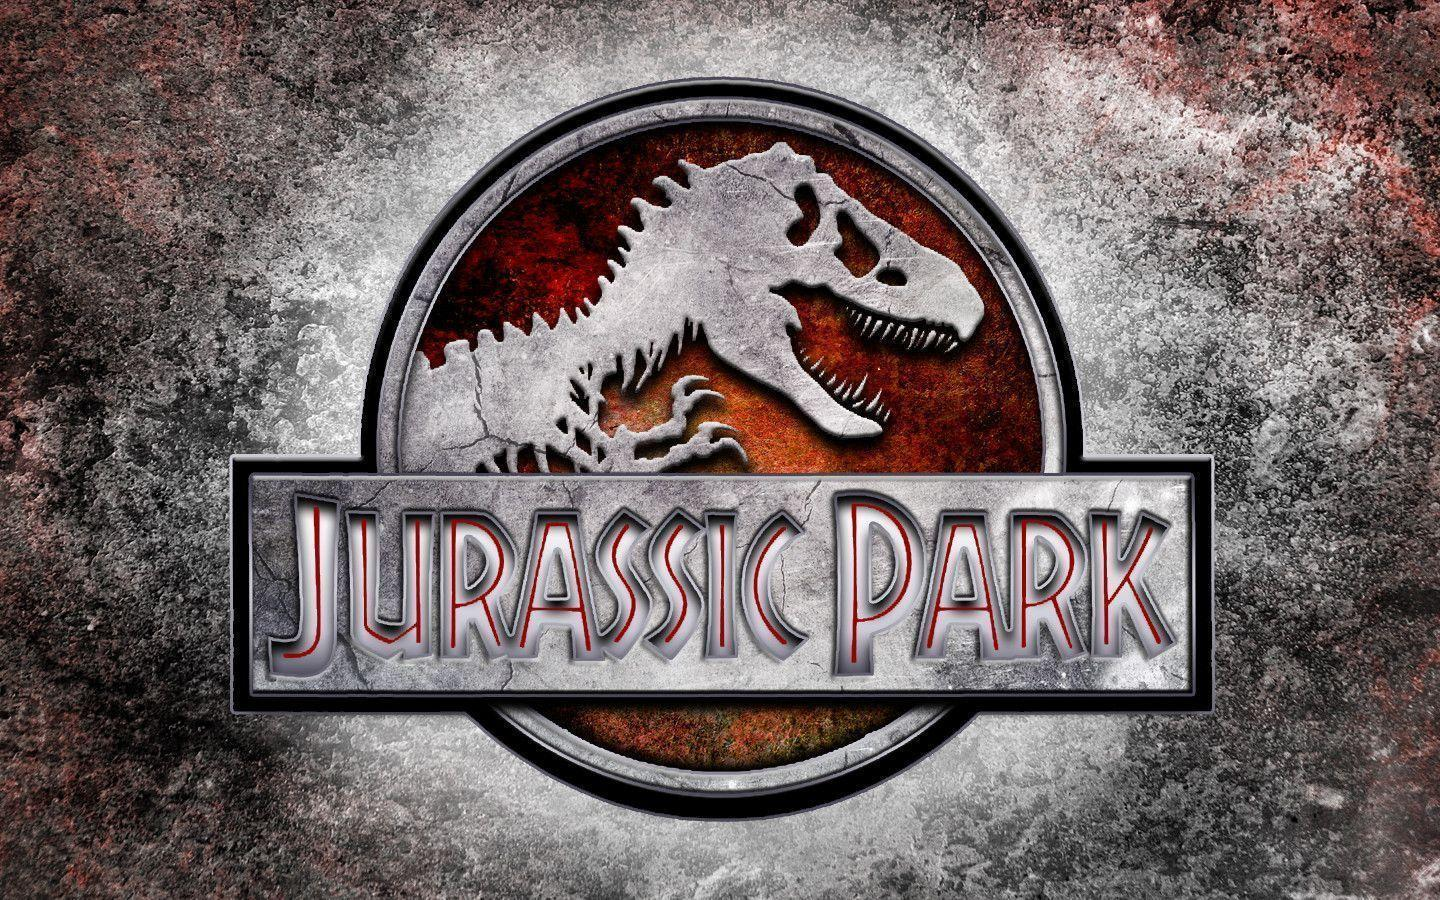 Jurassic Park Backgrounds 1440x900